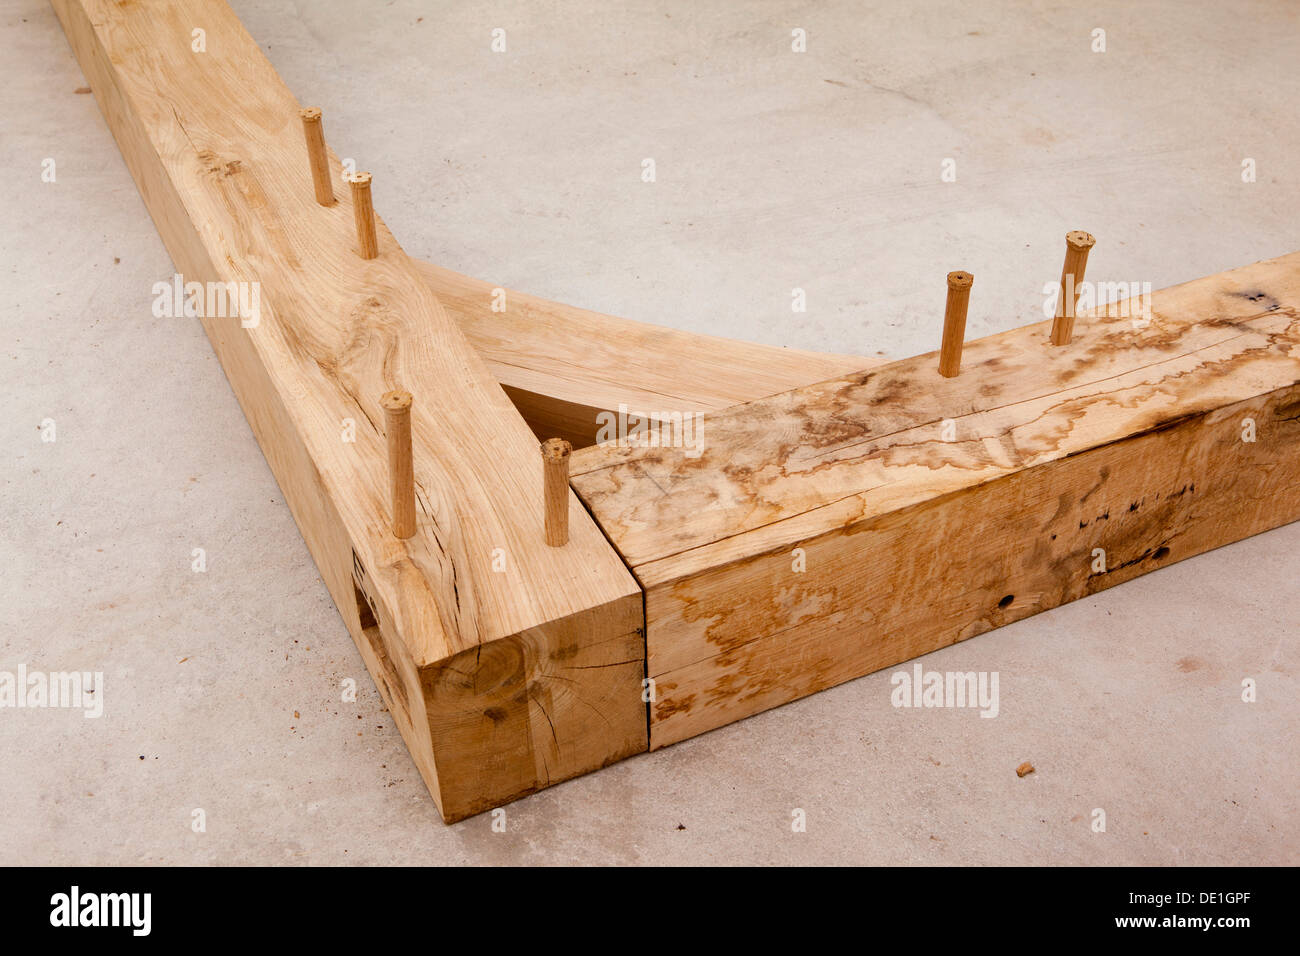 self building house, constructing green oak timber framed structure, pegged mortice and tenon joint and bracing - Stock Image